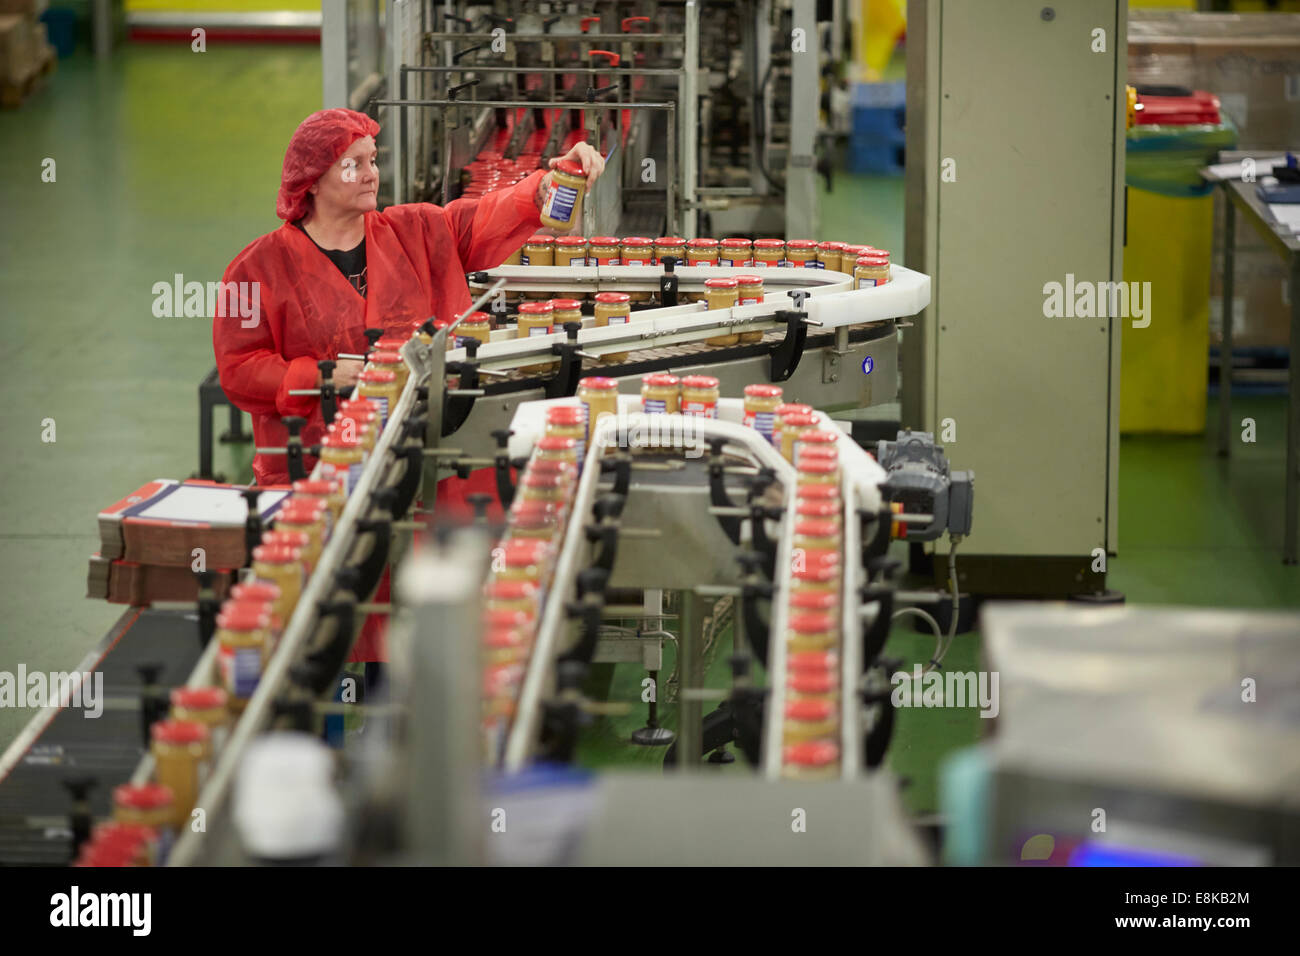 Peanut Butter Manufacturing production plant line in the family business factory floor of Duerr's Jams warehouse - Stock Image